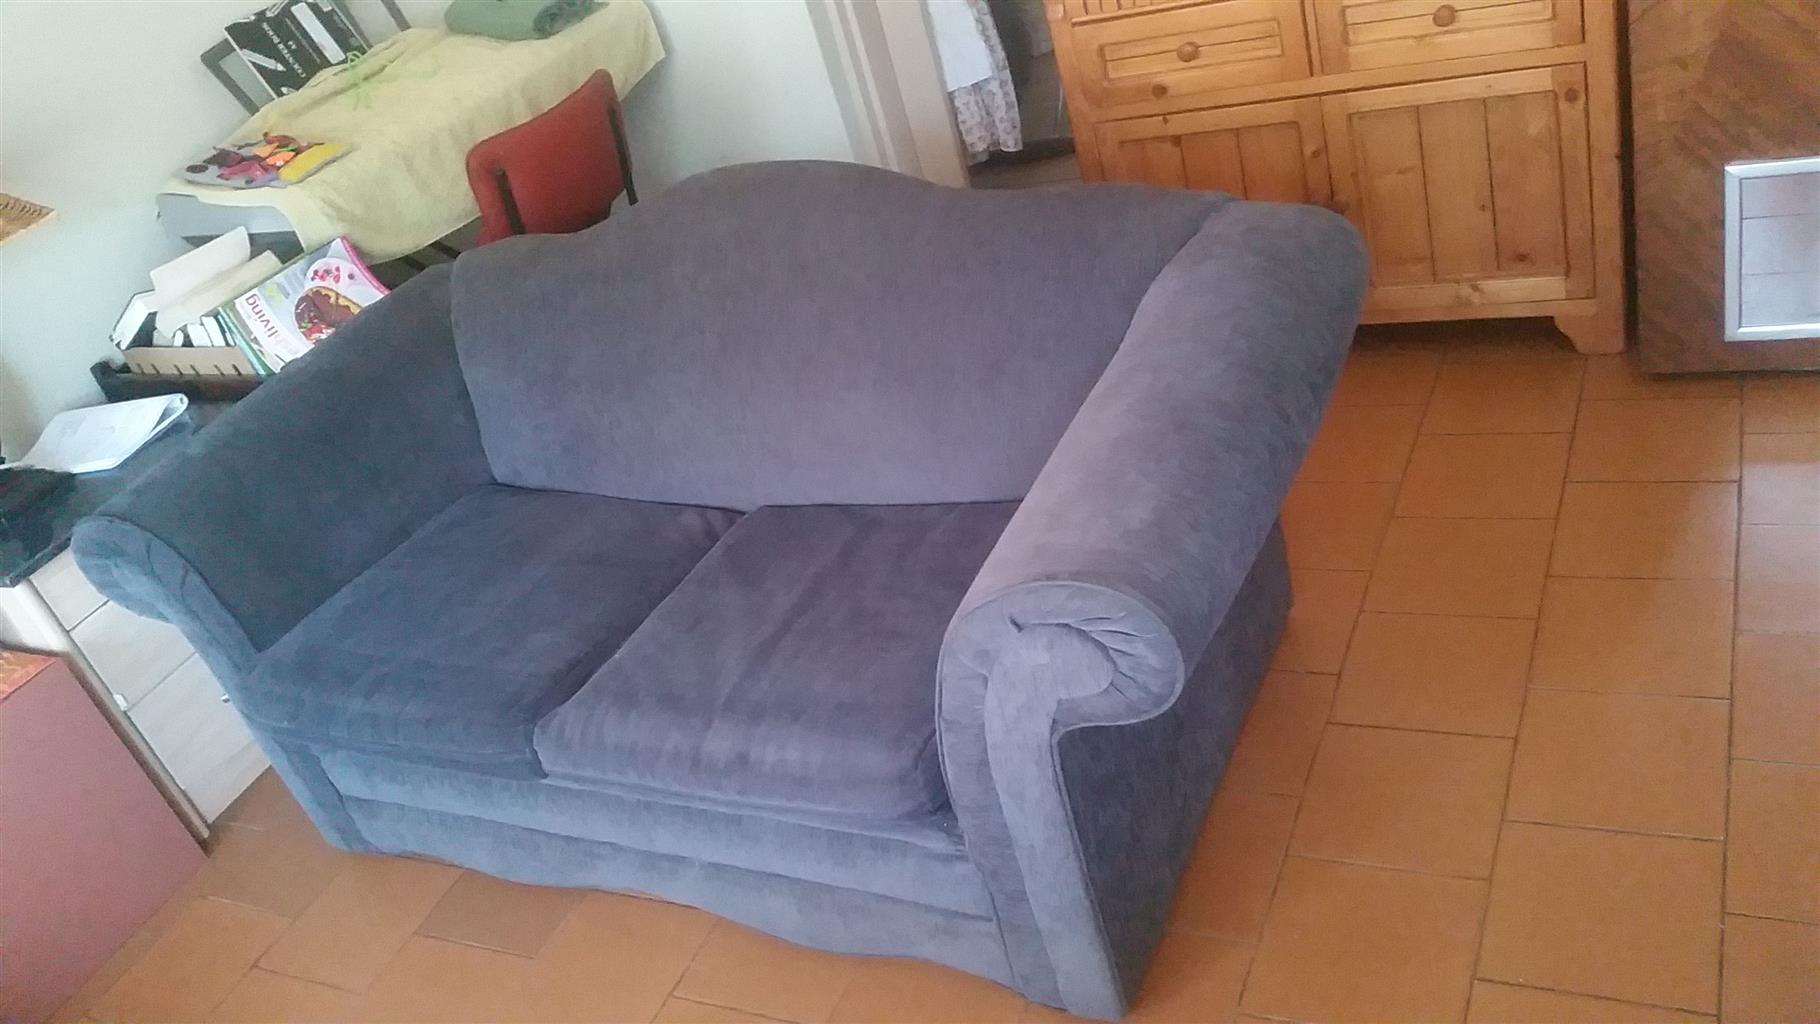 2 charcoal grey couches in good condition.